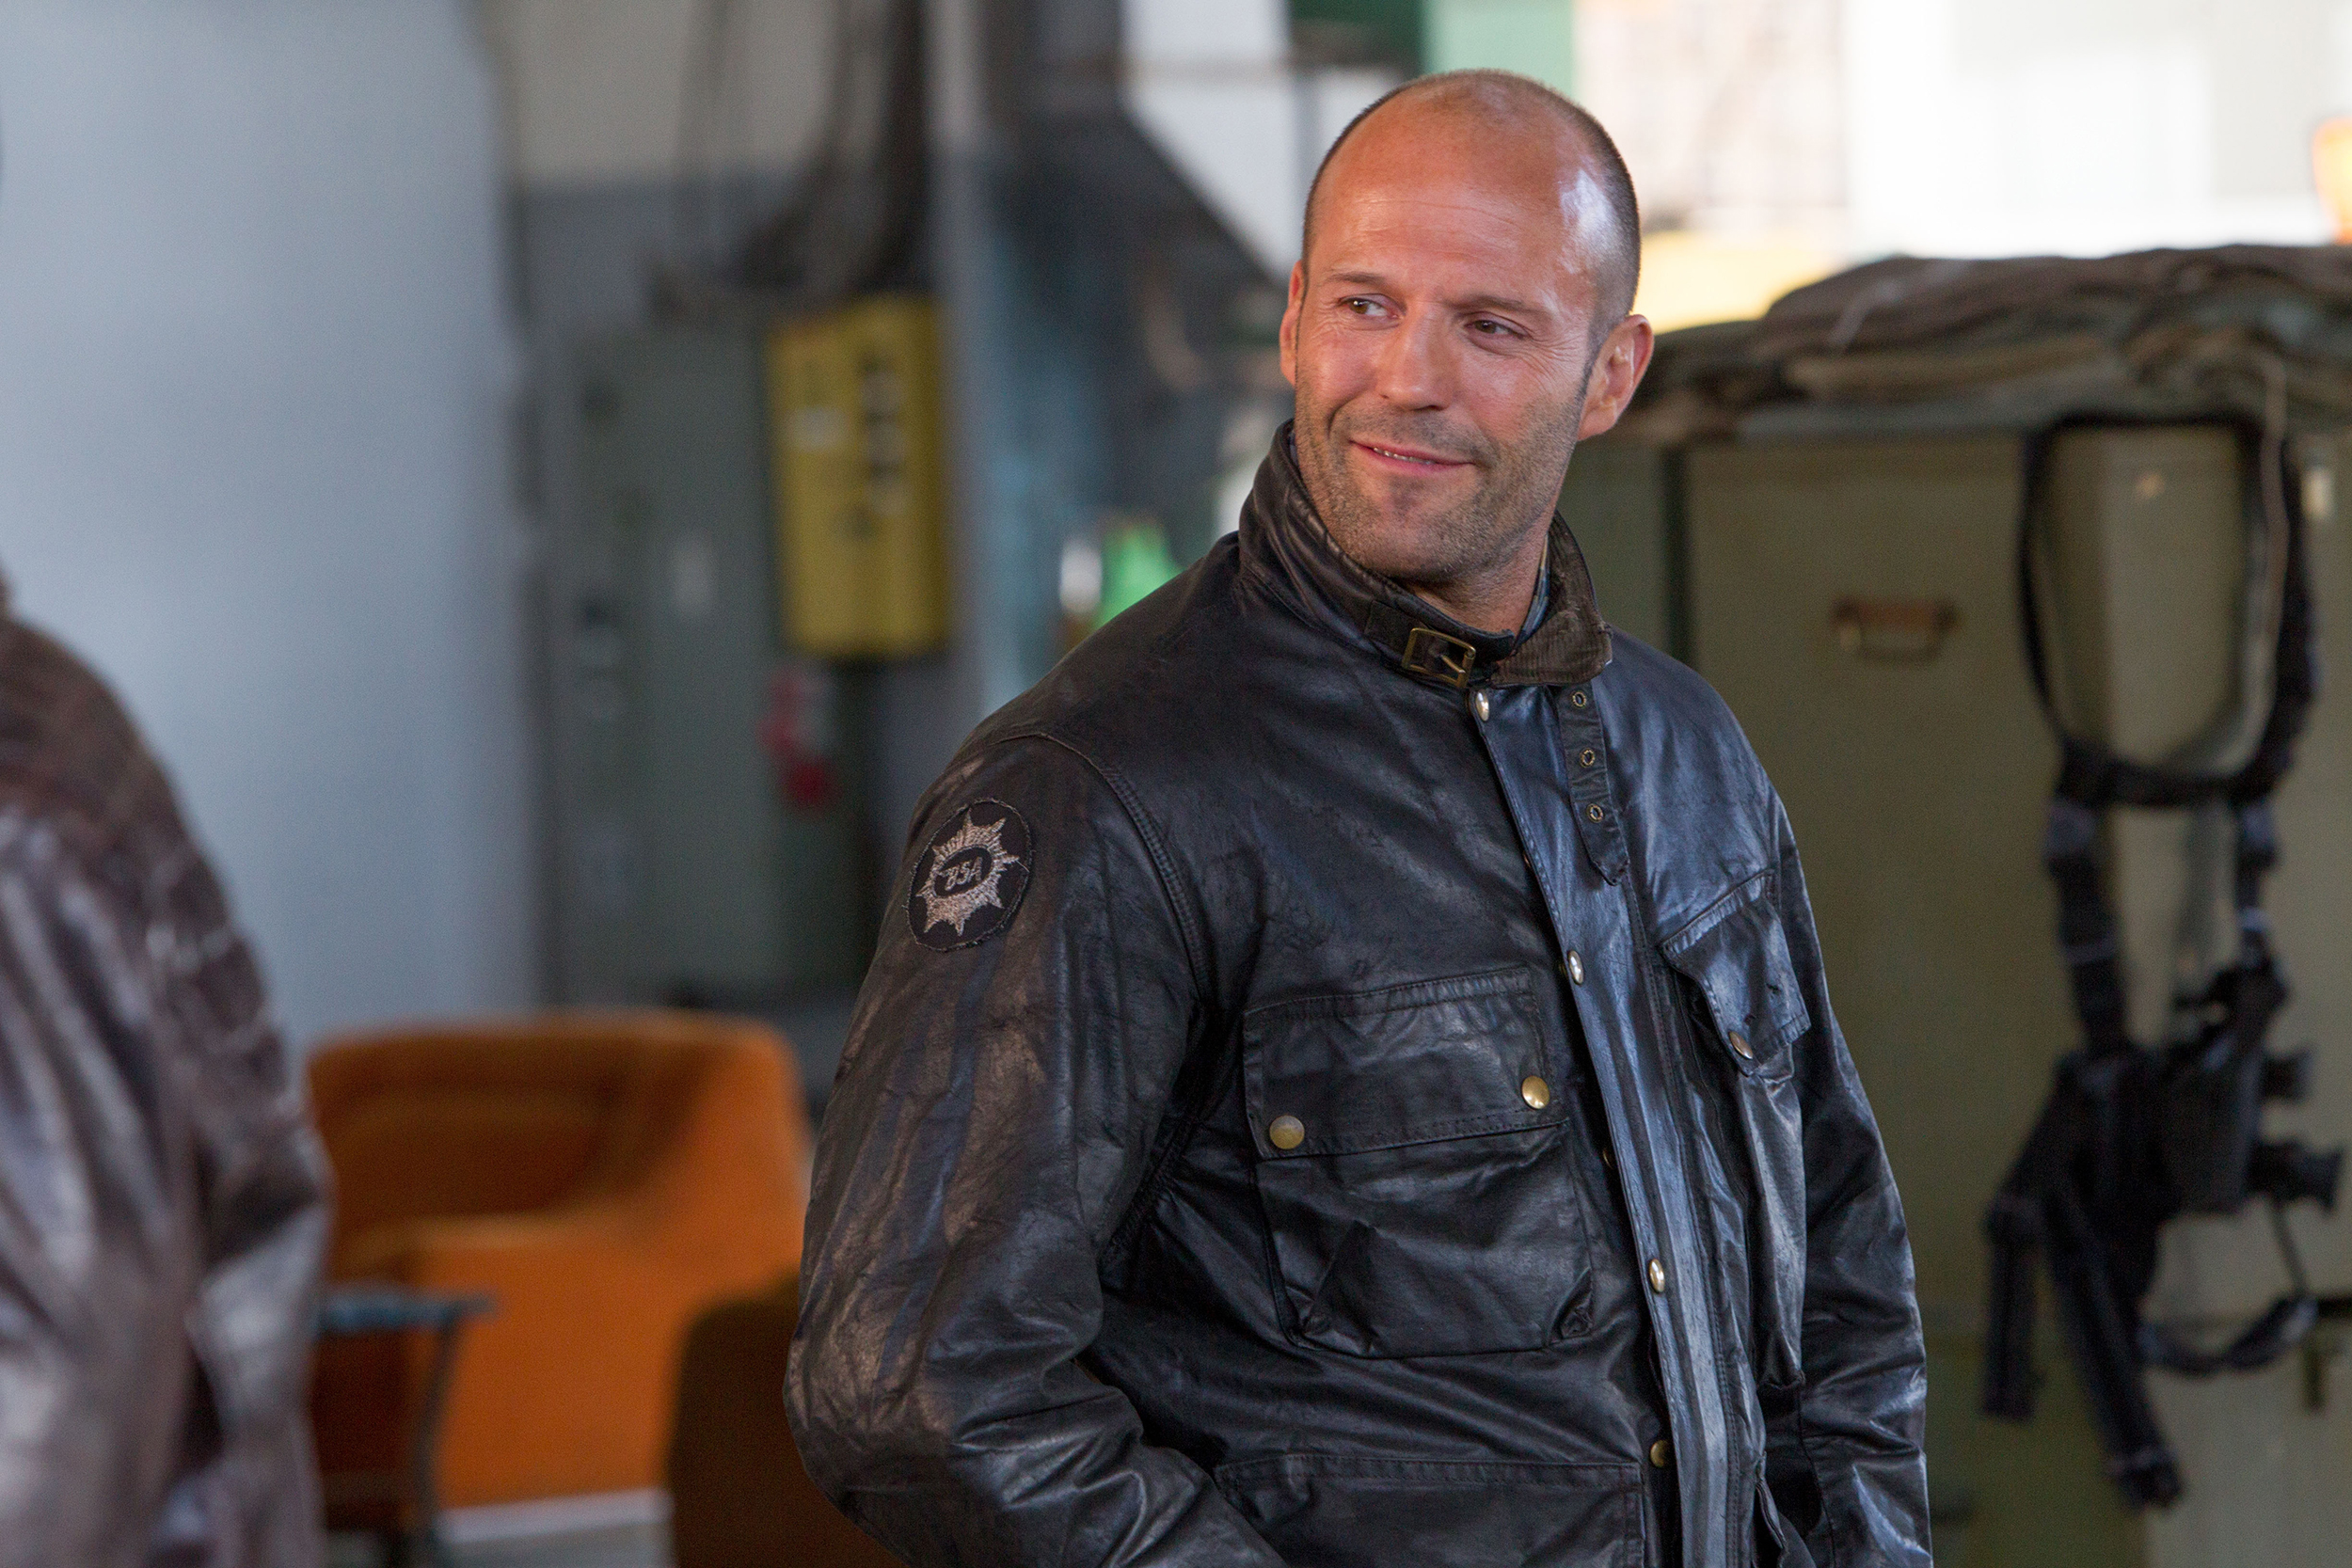 Pictures The Expendables 2010 Jason Statham Movies Celebrities 2500x1667 film